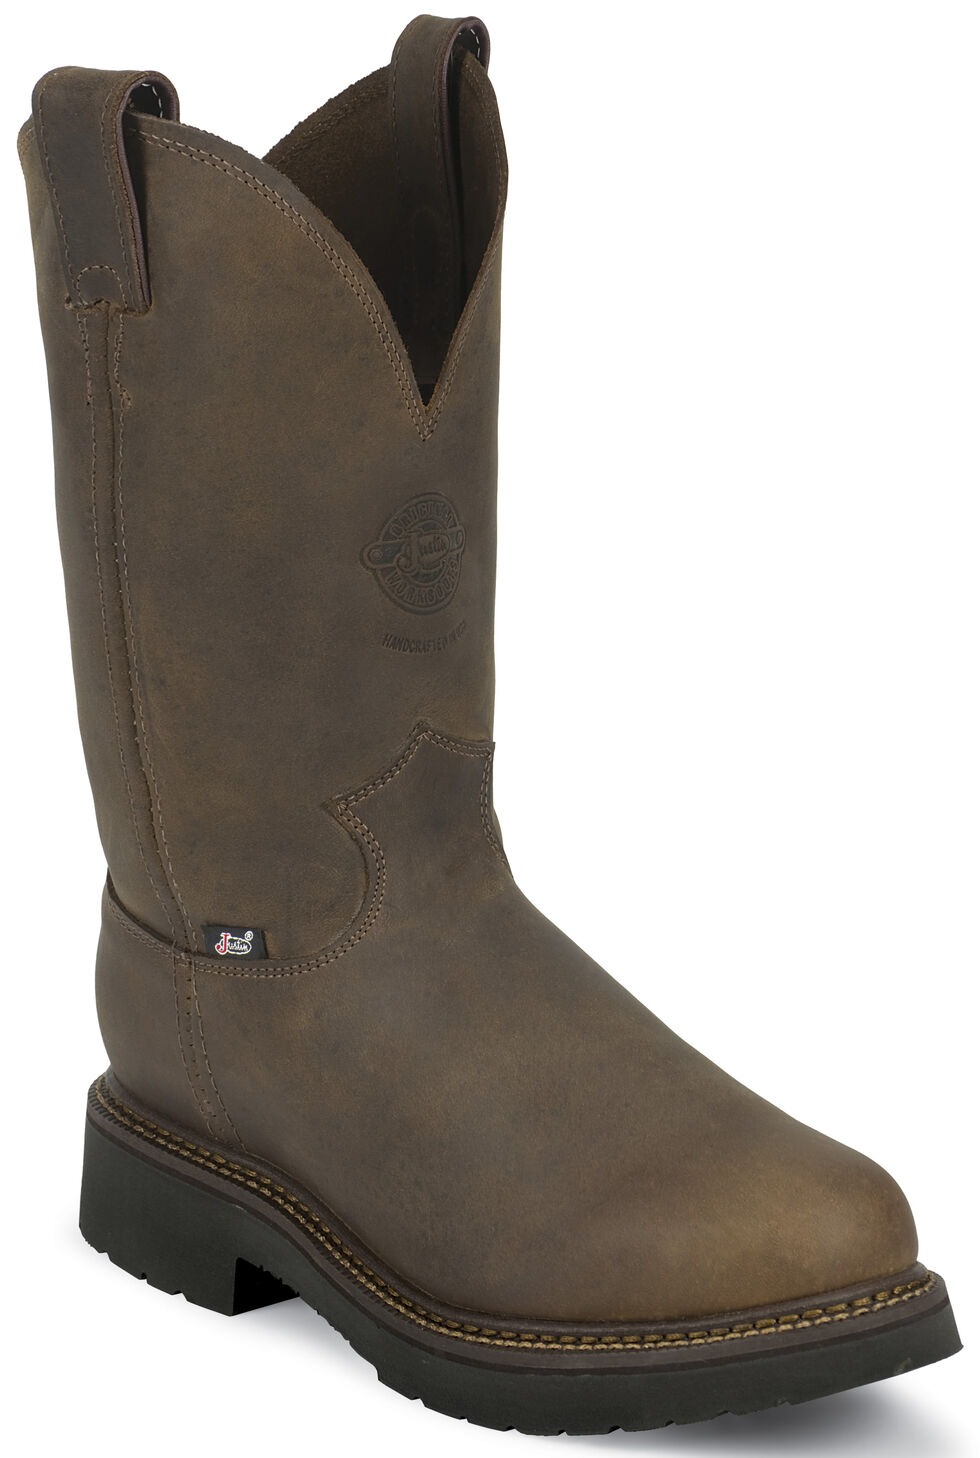 Justin Men's J-Max Balusters Electrical Hazard Pull-On Work Boots - Steel Toe, Chocolate, hi-res